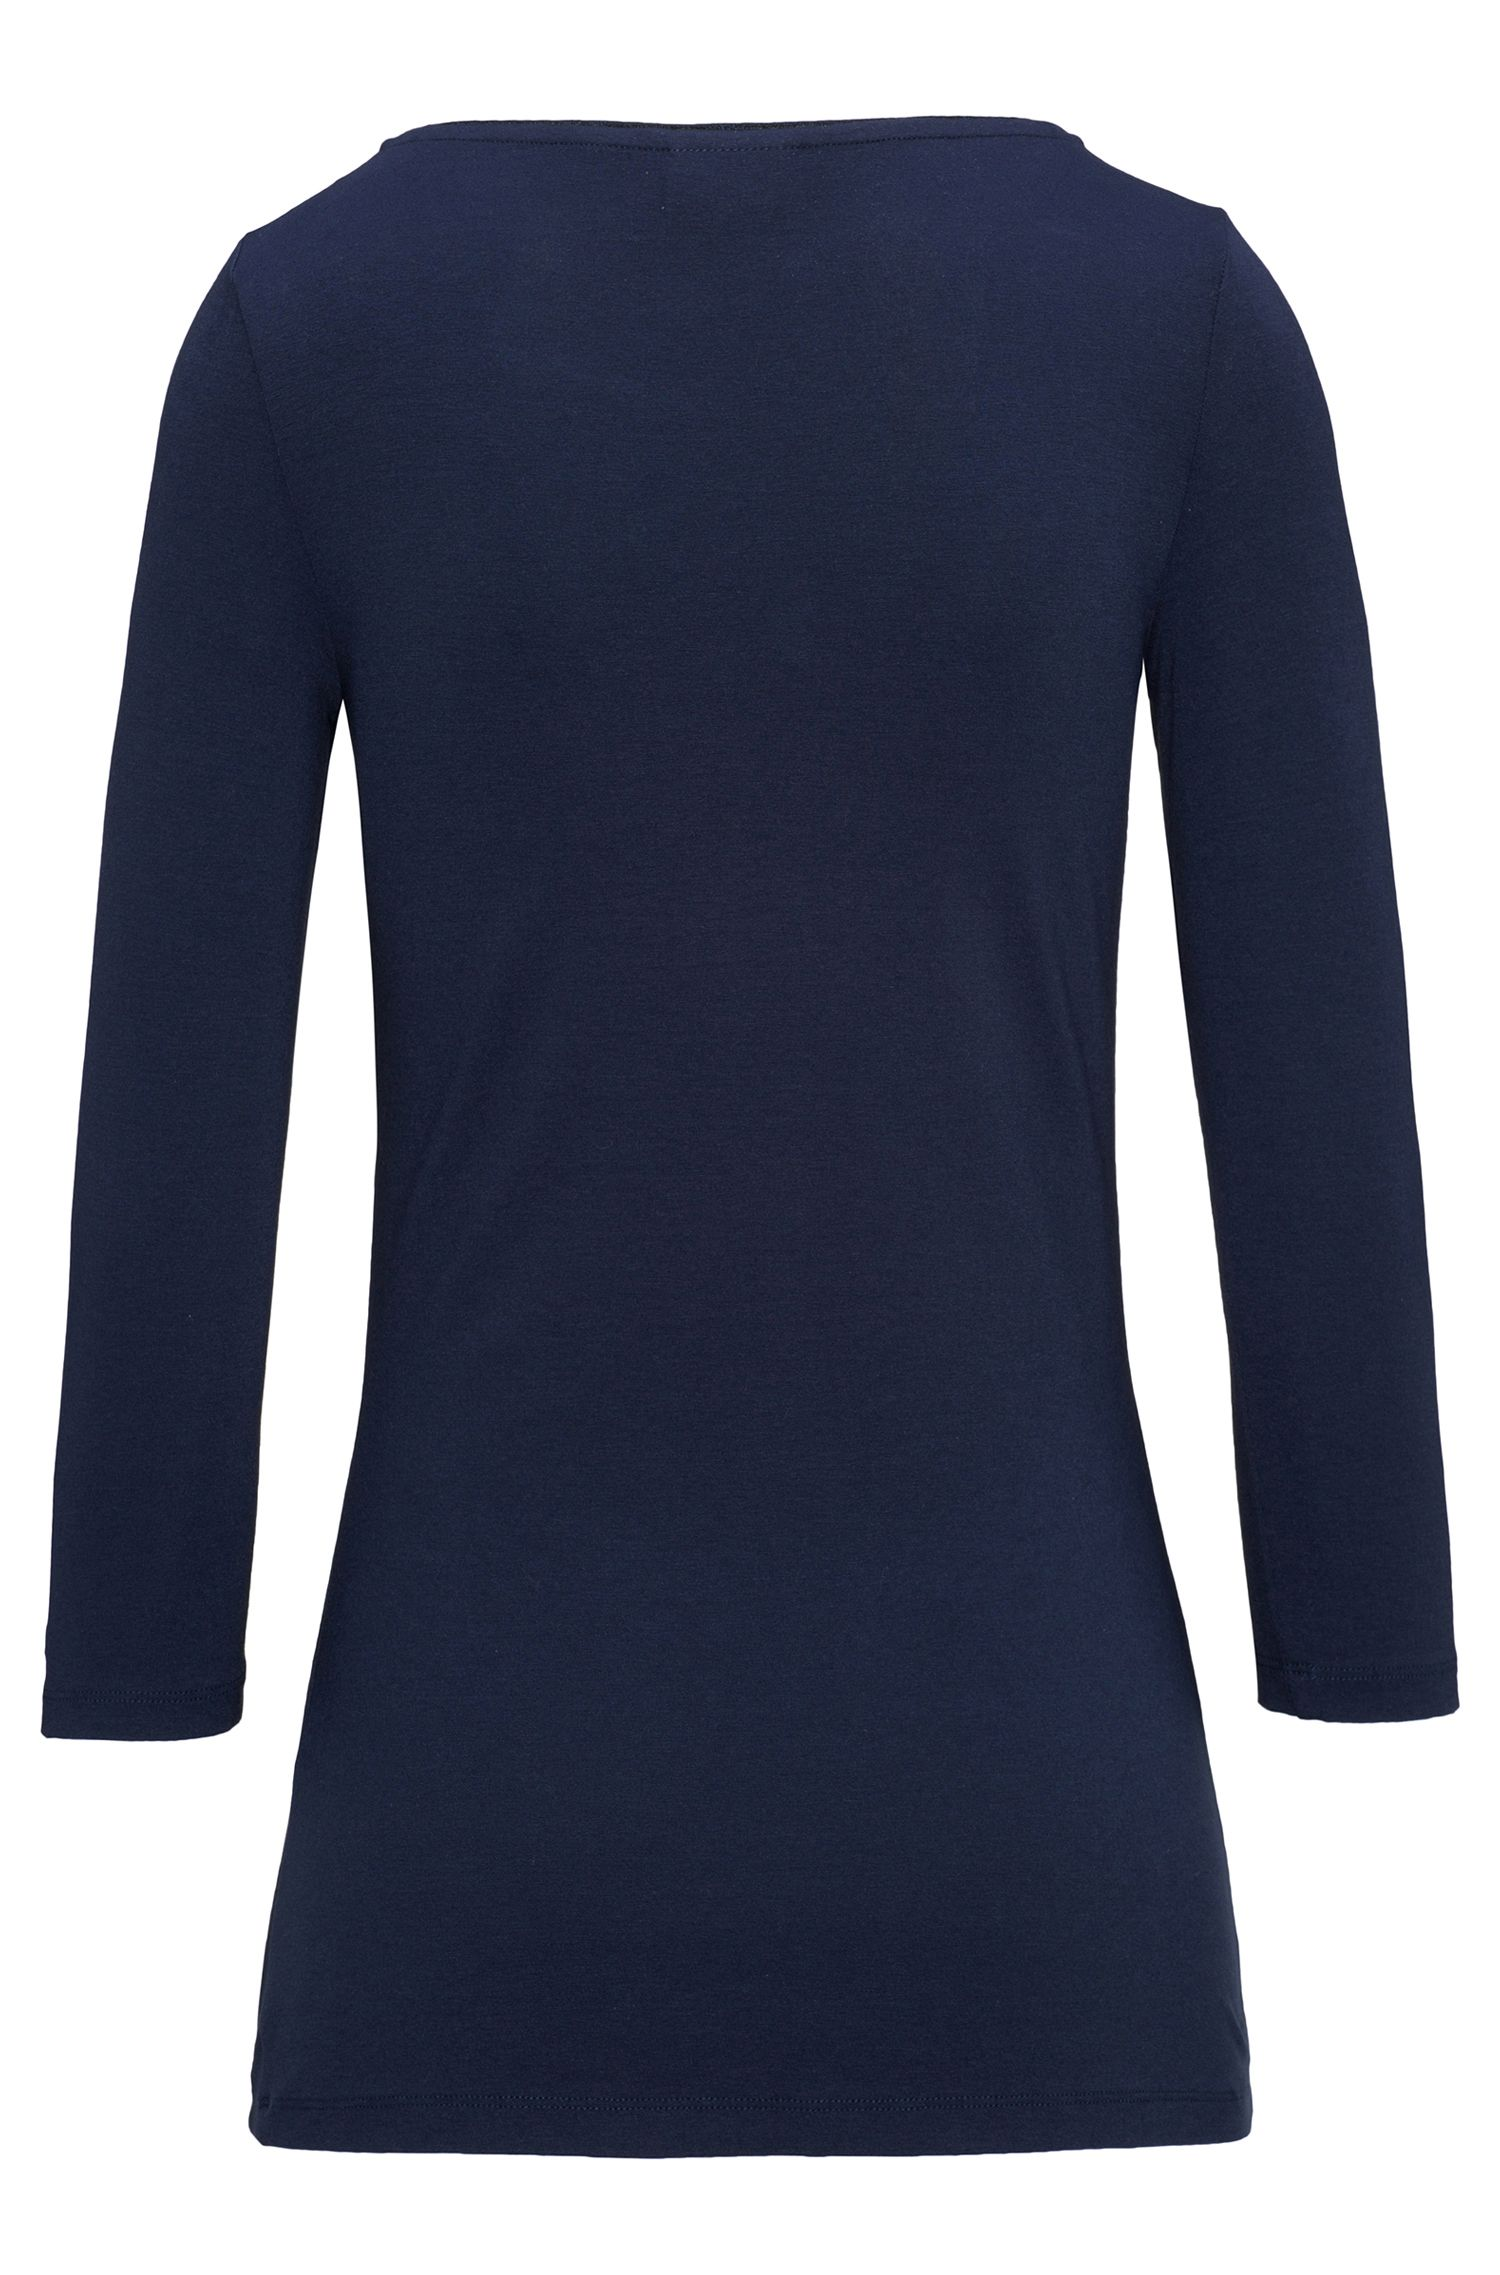 T-shirt uni en viscose stretch : « Dannela »